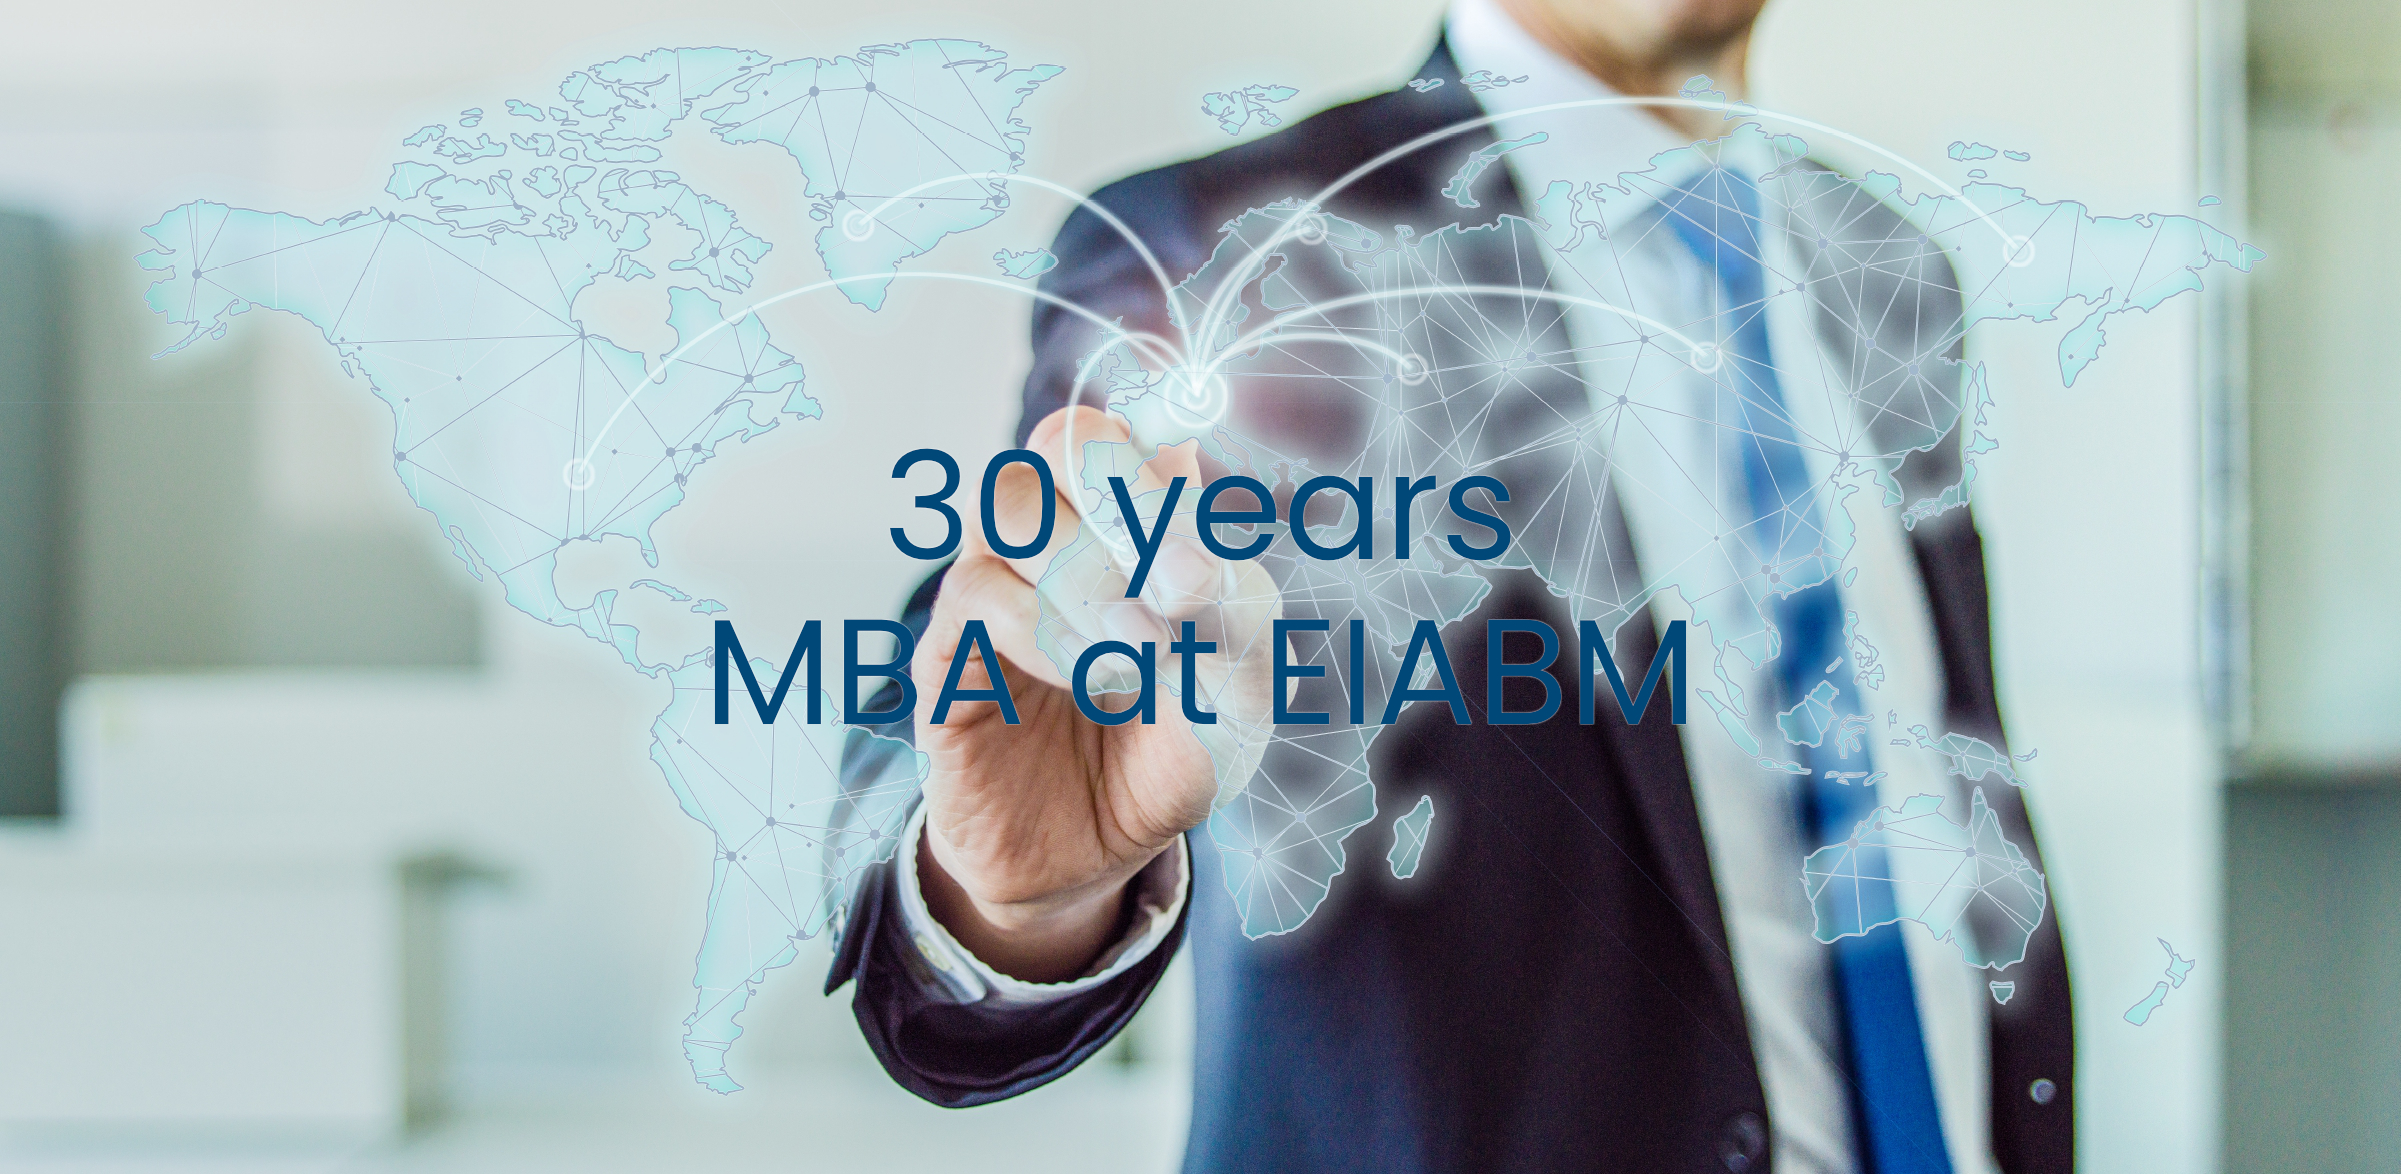 30 years MBA European Management at EIABM